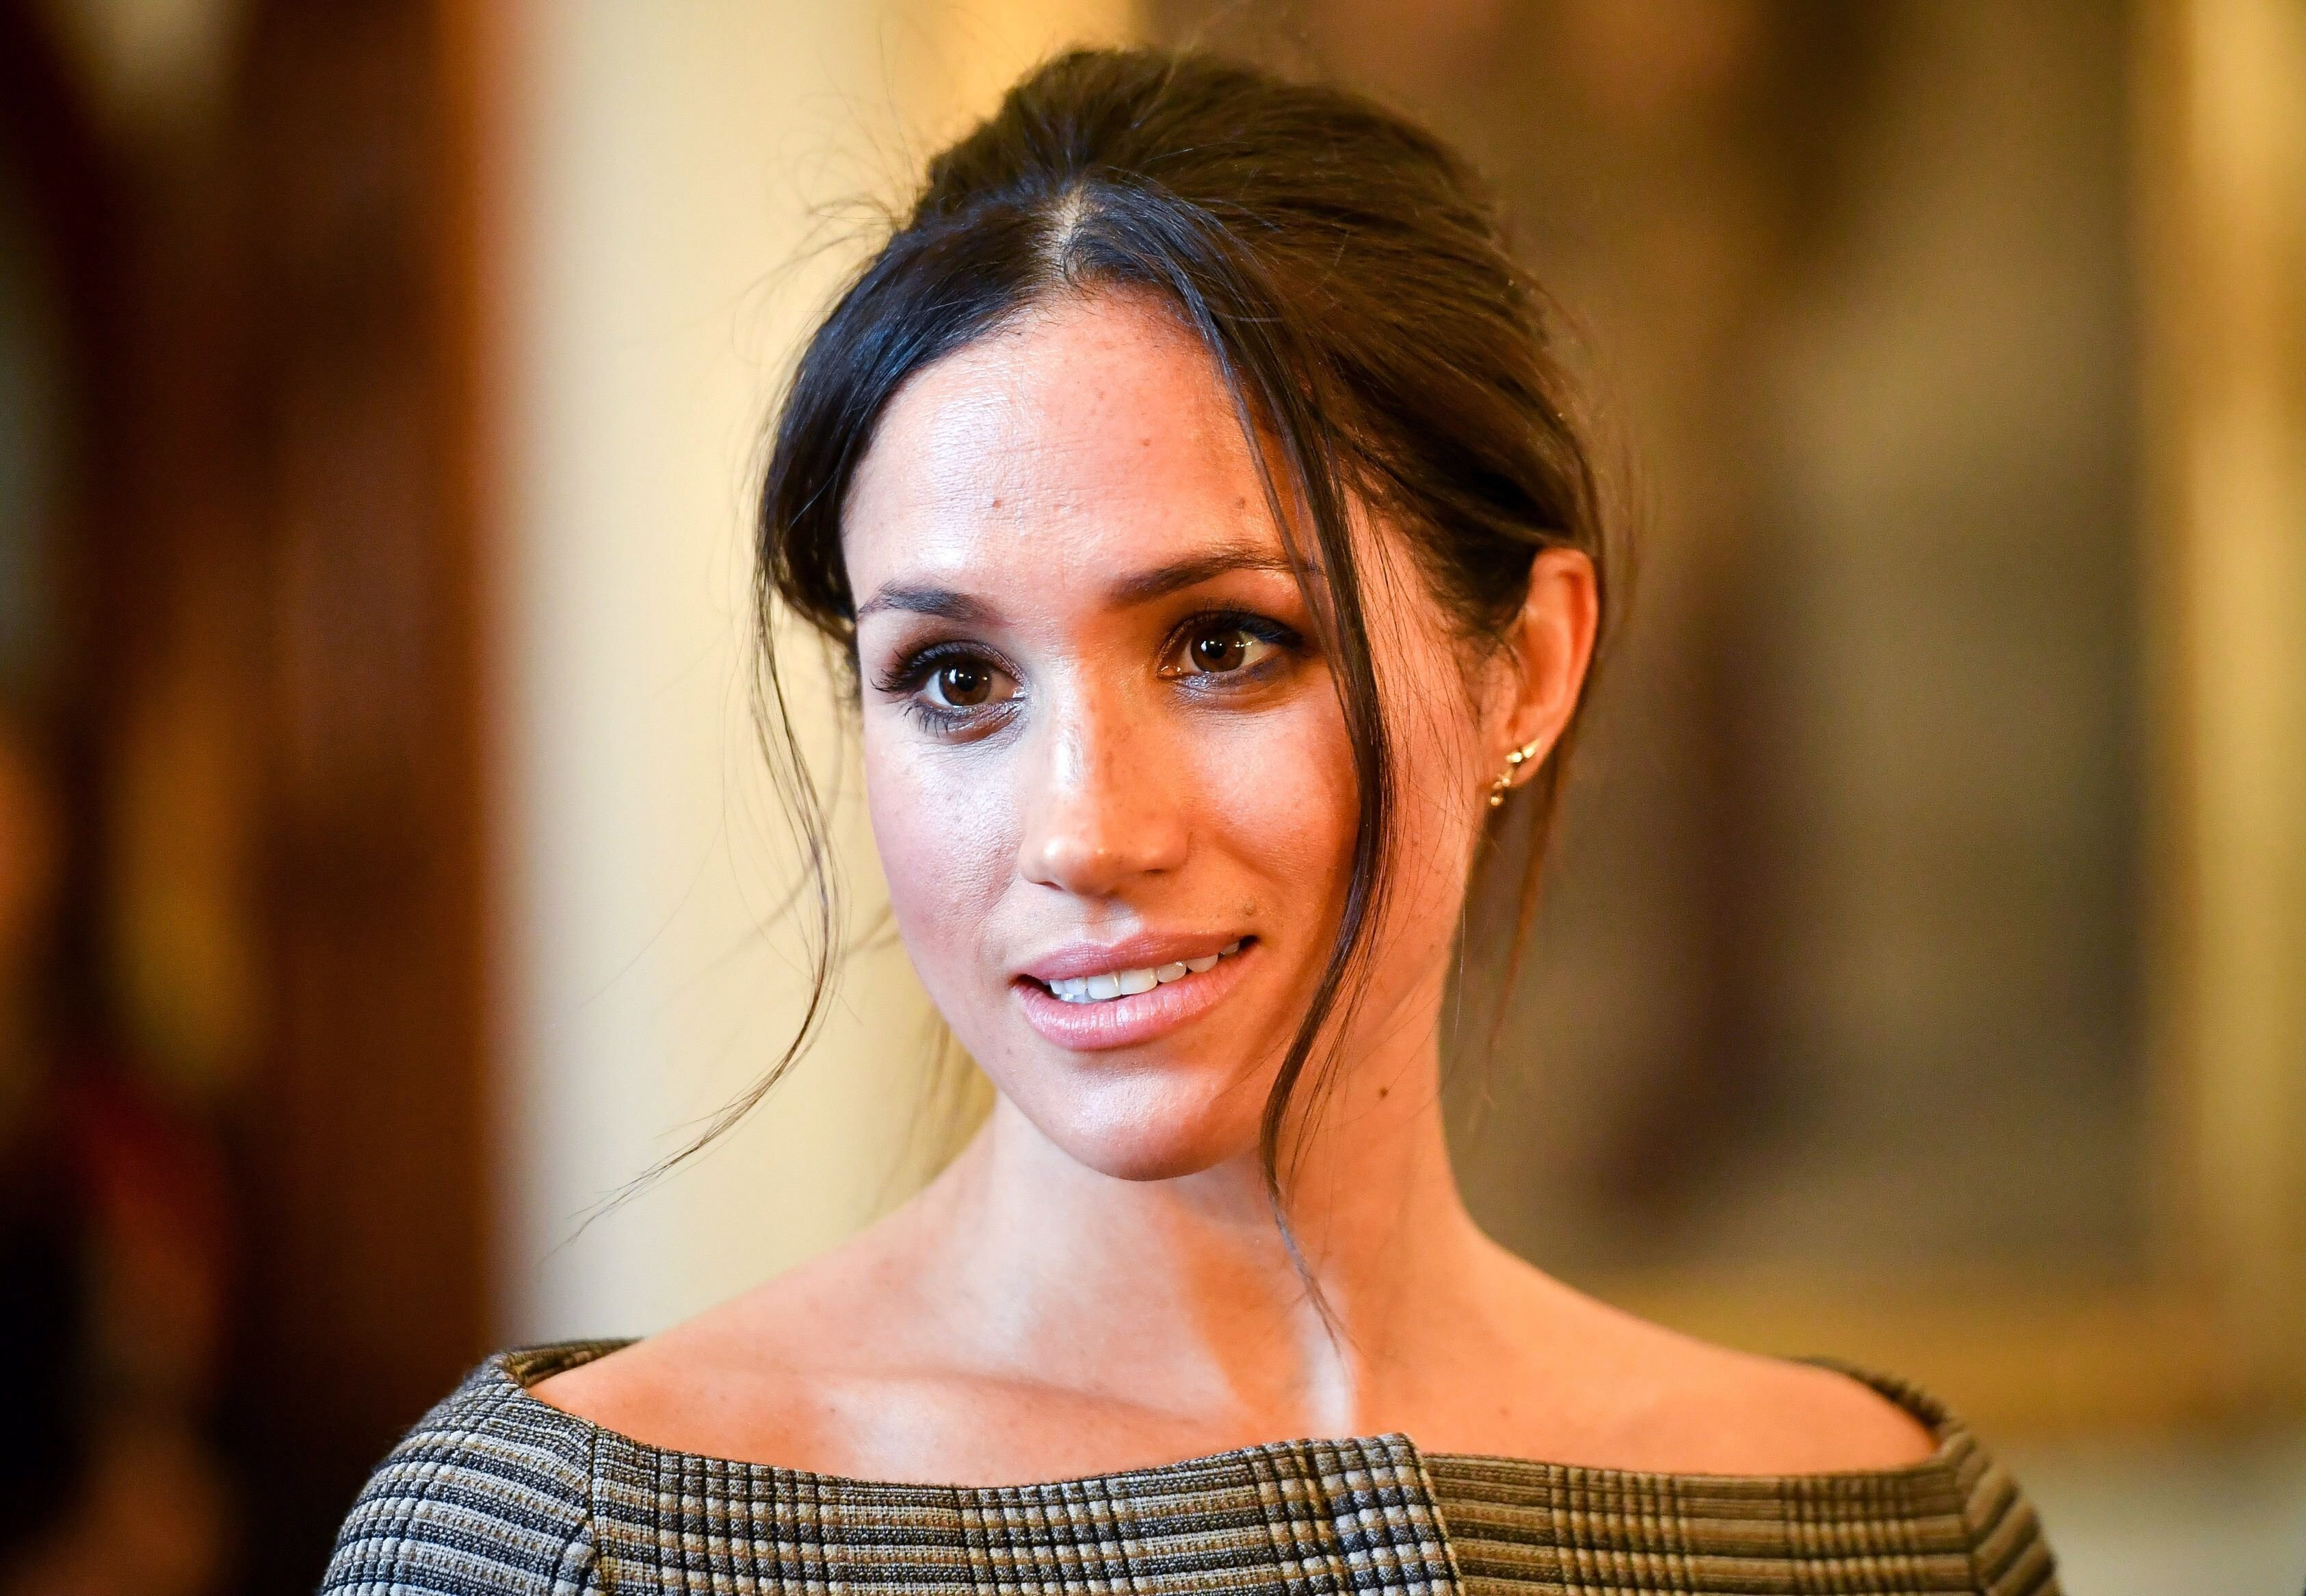 The Duchess of Sussex, former actress Meghan Markle/ Source Getty